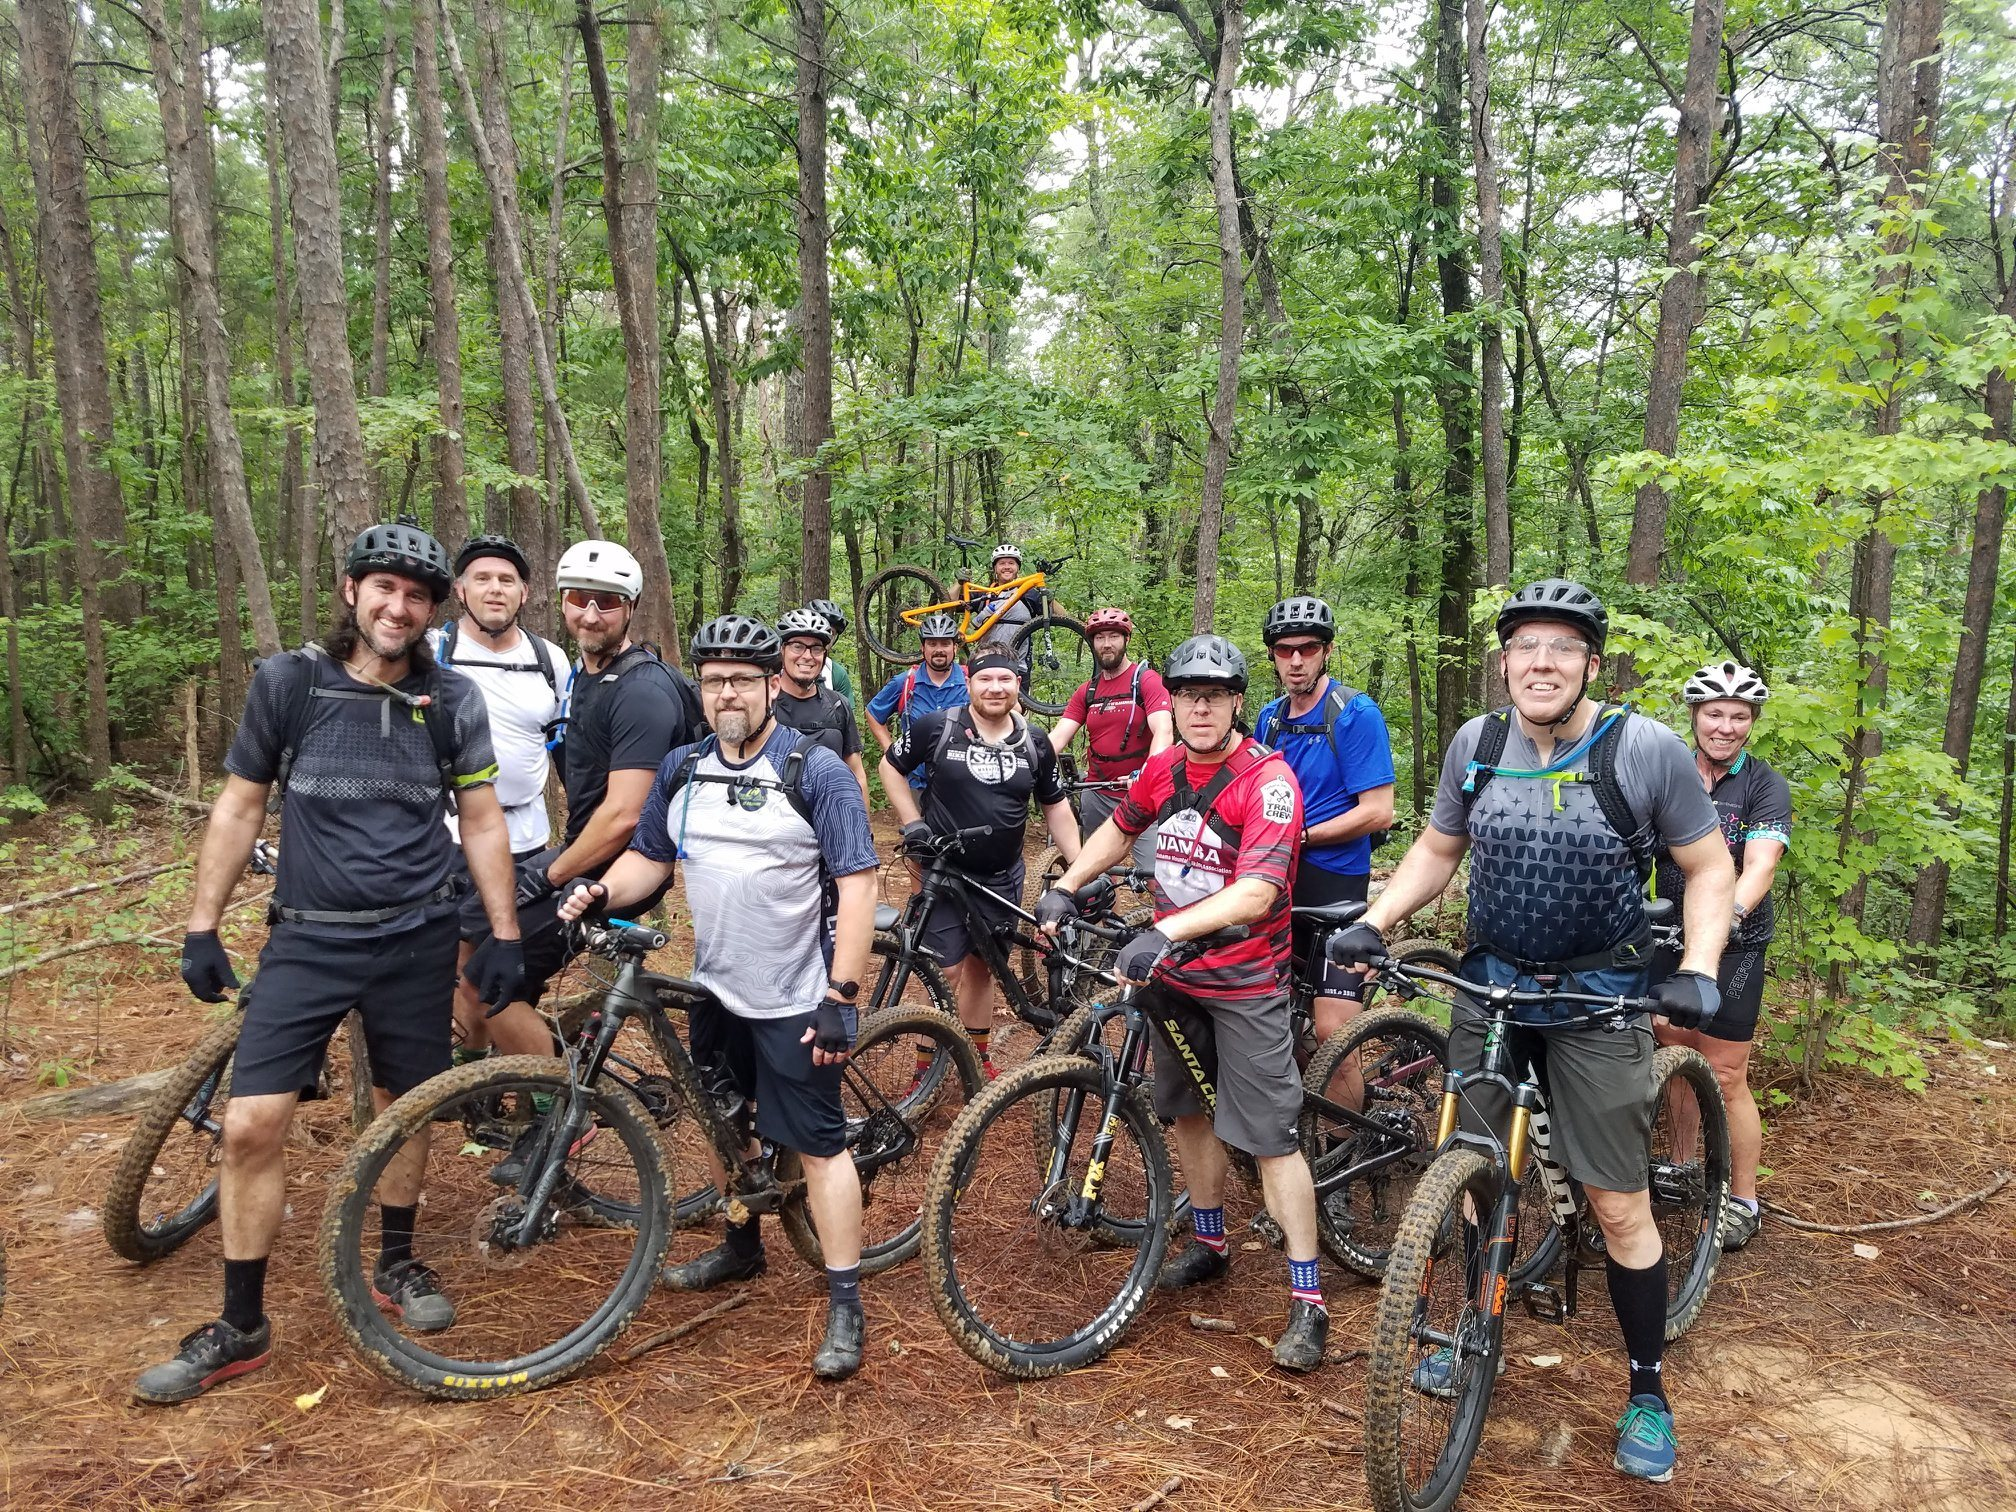 BUMP's August Ride and Chill group ride at Tannehill